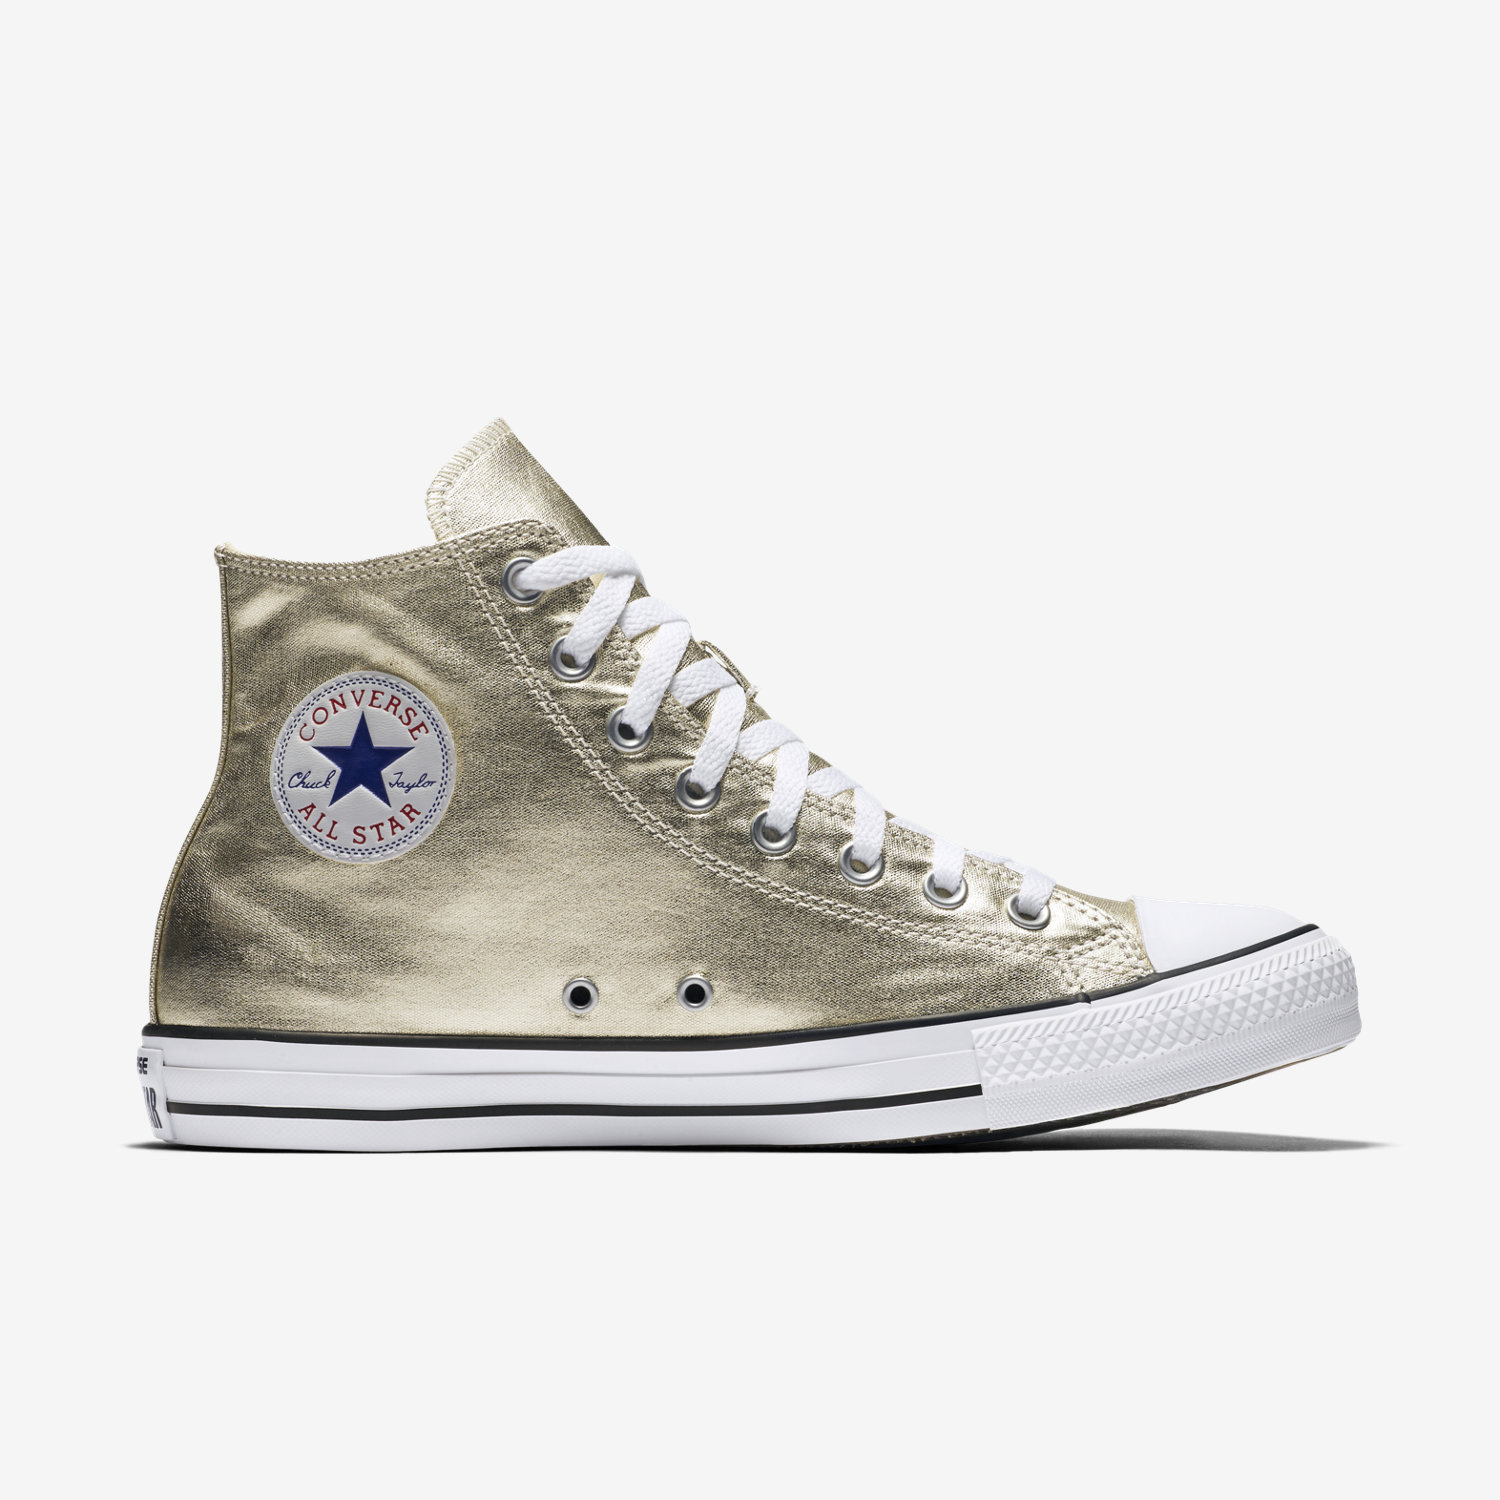 cheap discount sale free shipping best wholesale Nike Chuck Taylor All Star Metallic Hi clearance purchase UbEbB9RzGB